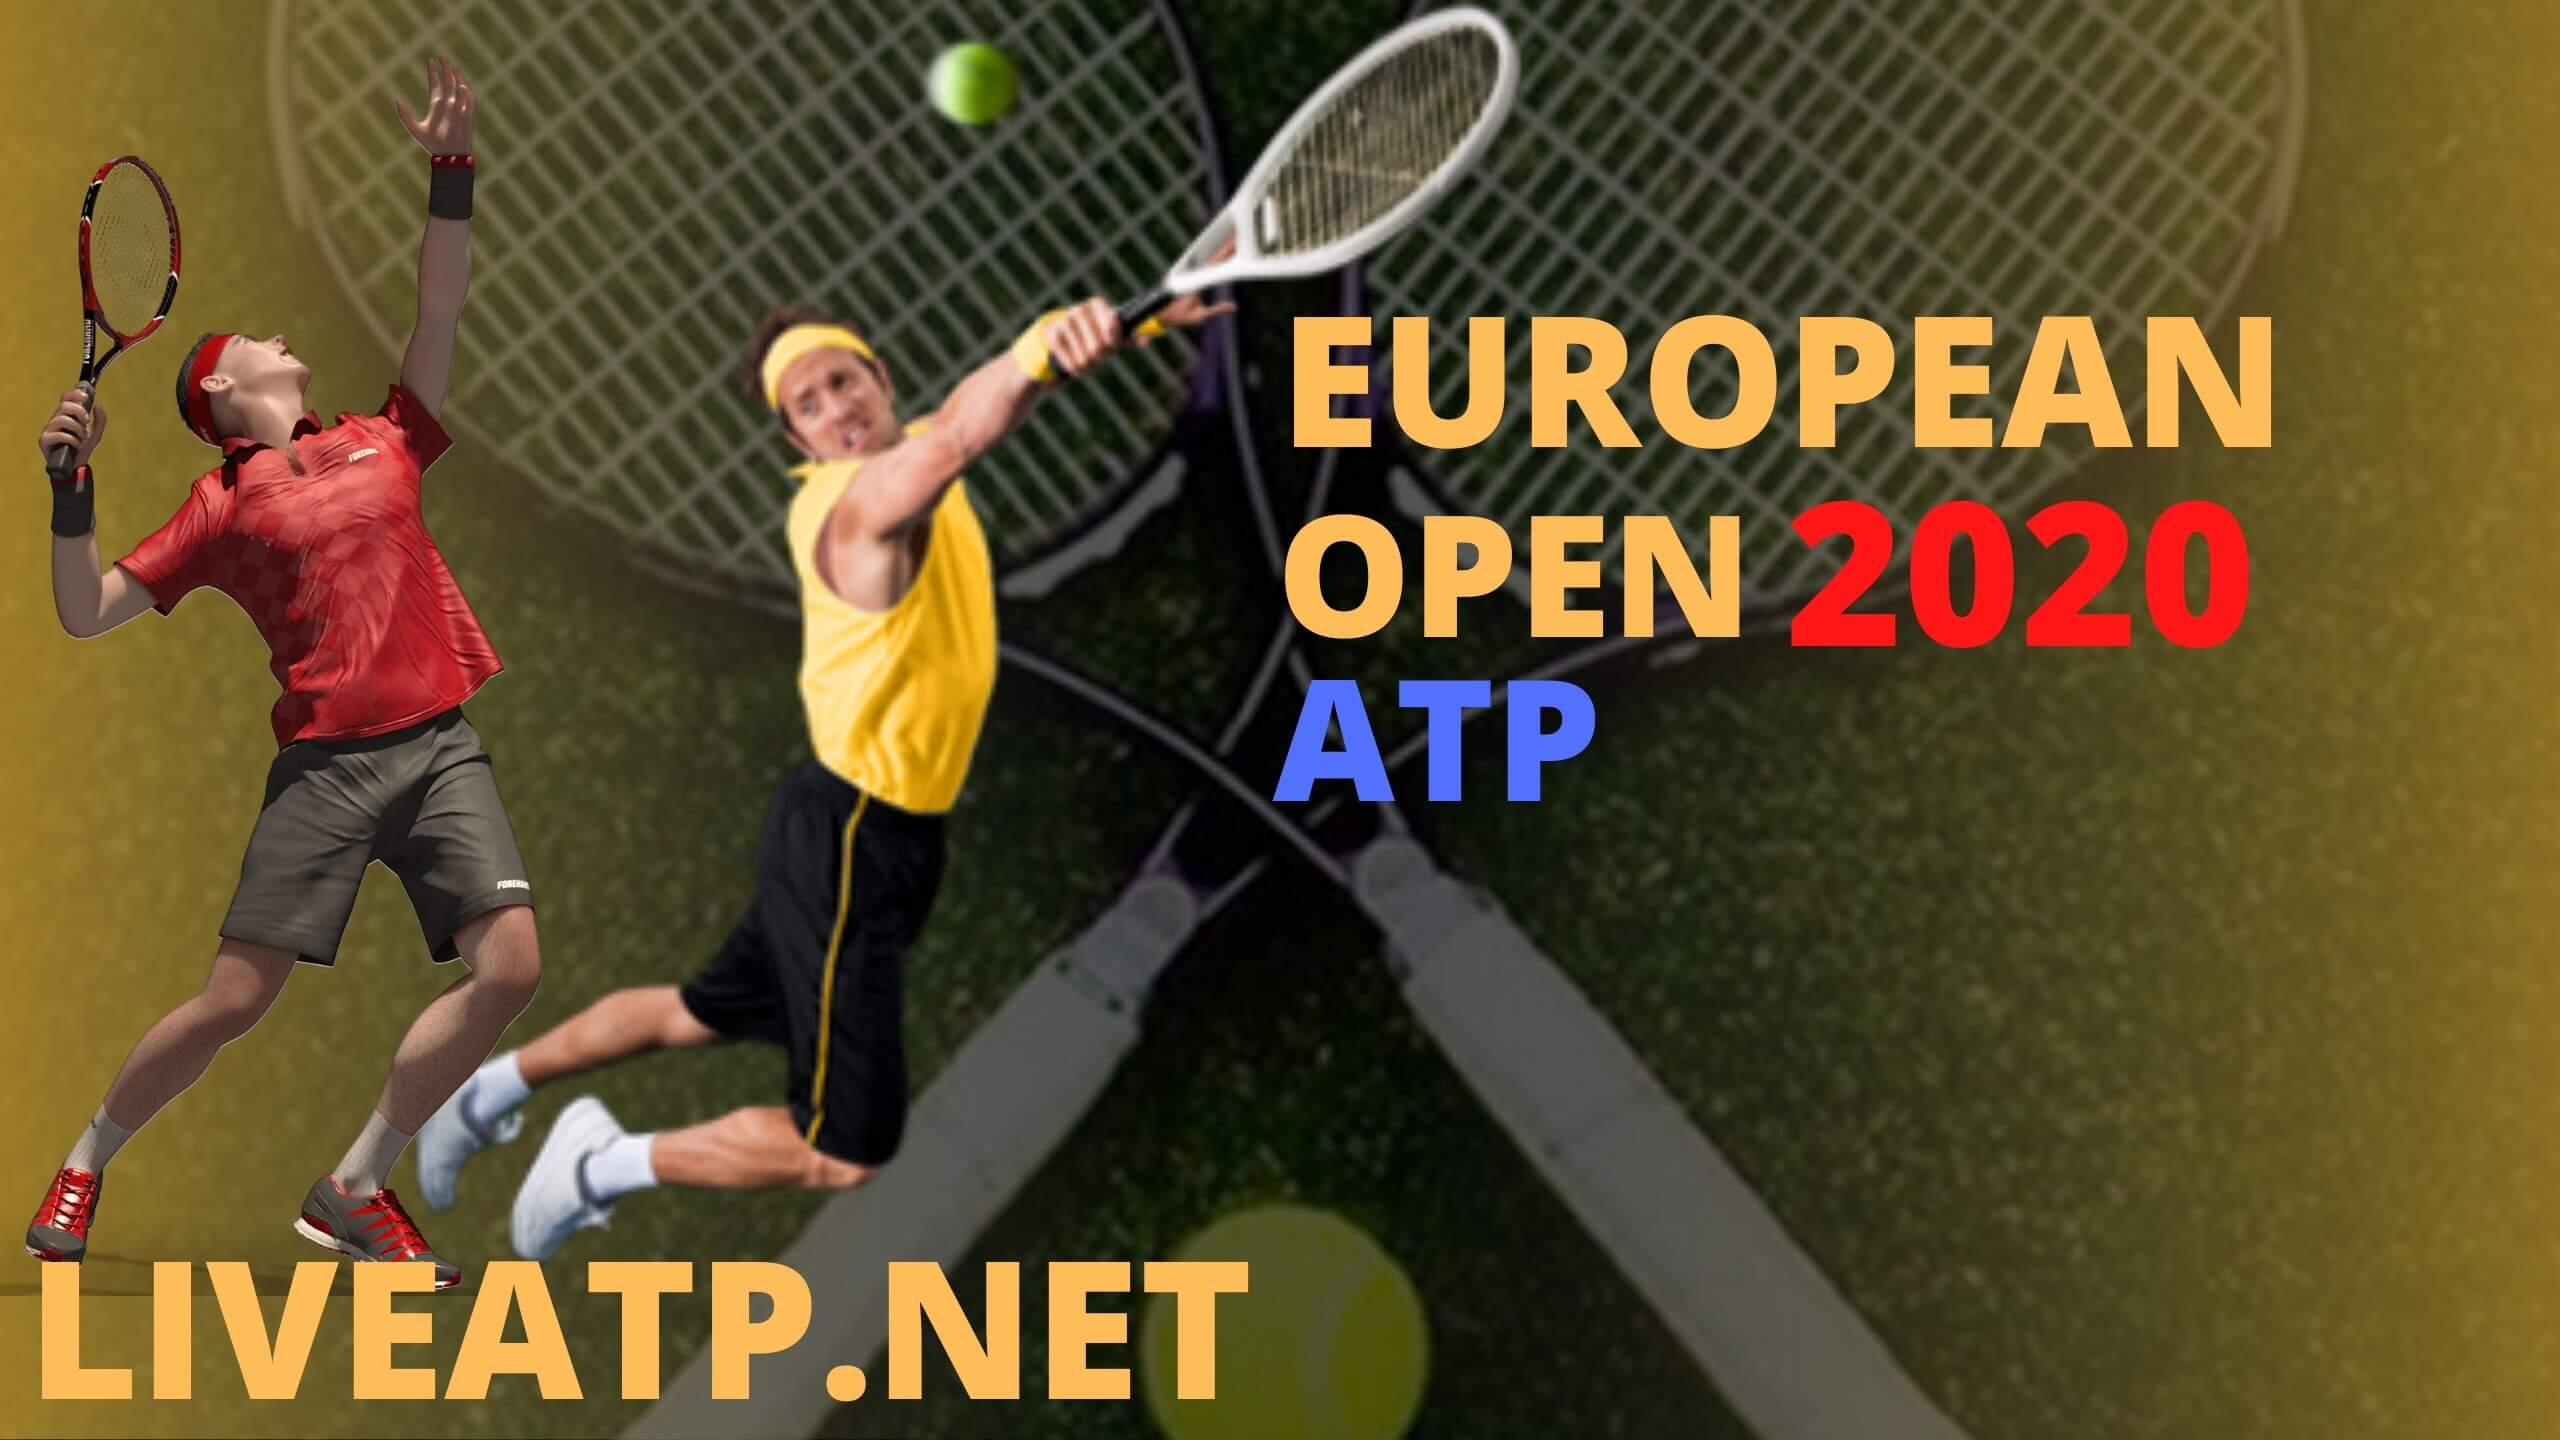 European Open Live Stream 2020 | Day 1